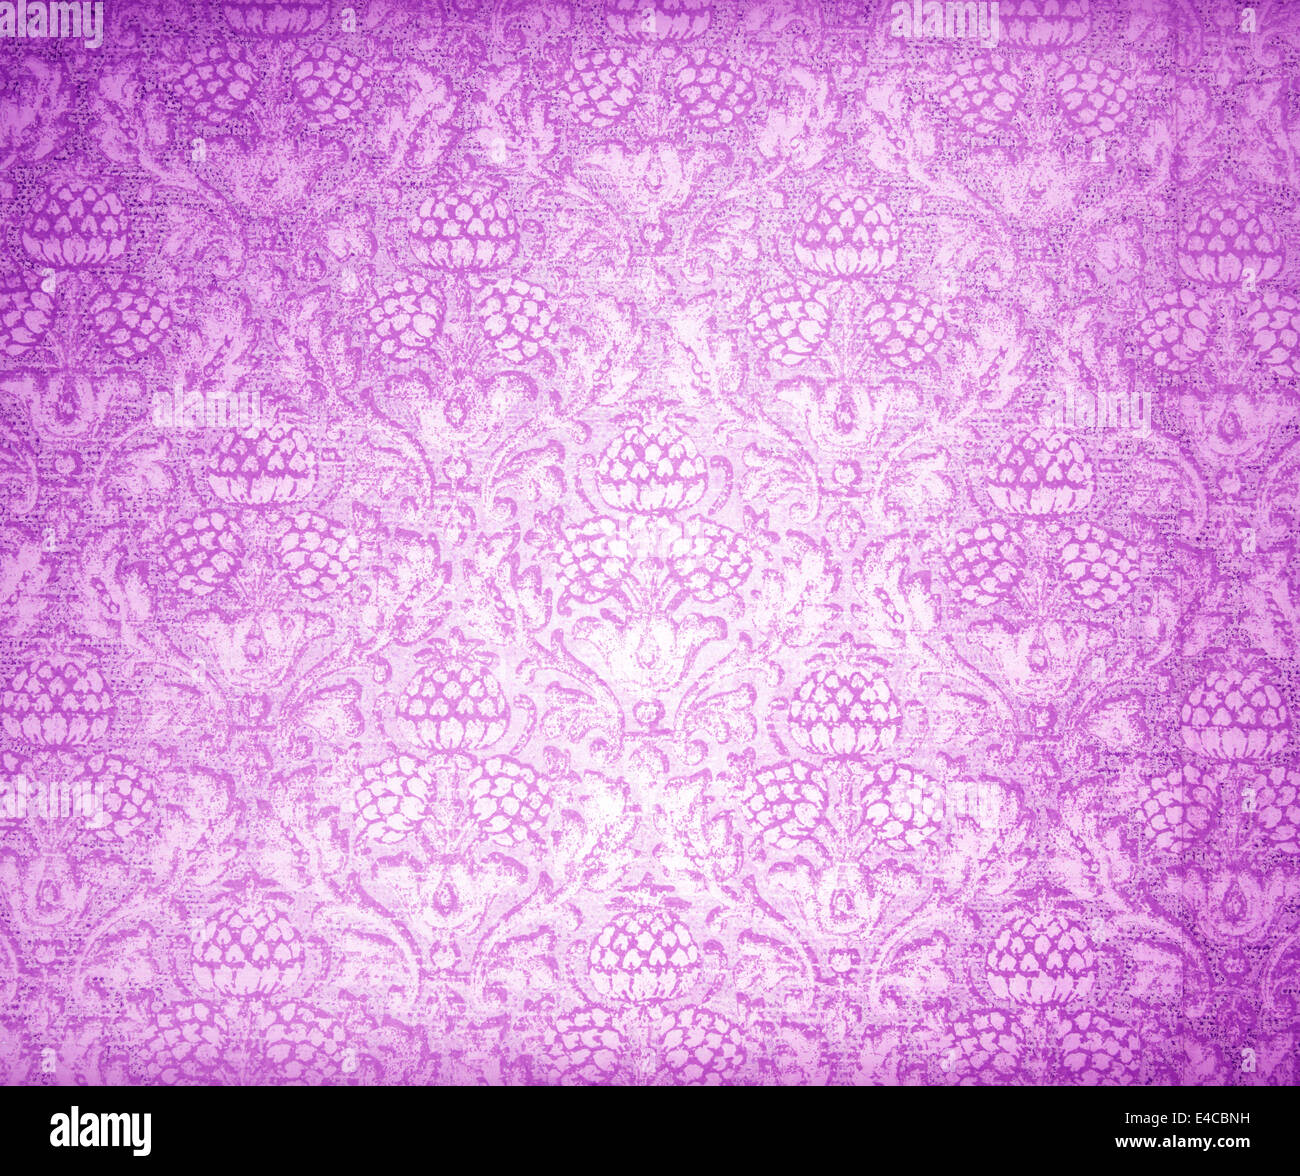 Wallpaper Vintage Shabby Background With Classy Patterns Abstract